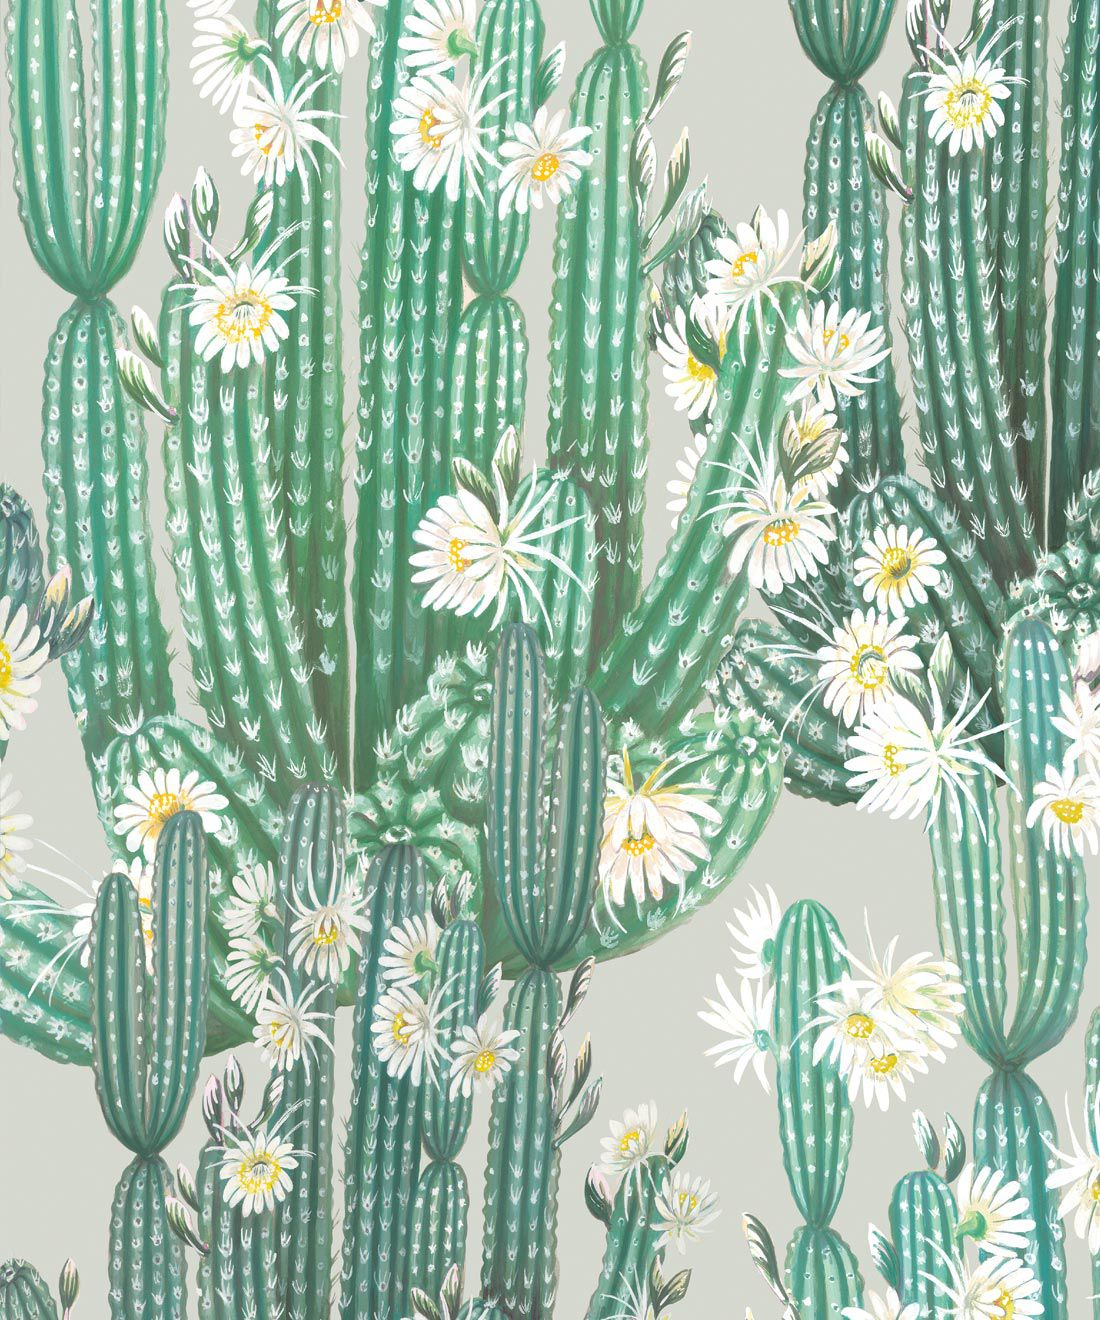 San Pedro Wallpaper Green • Cactus Wallpaper • Succulents Wallpaper • Desert Wallpaper Swatch